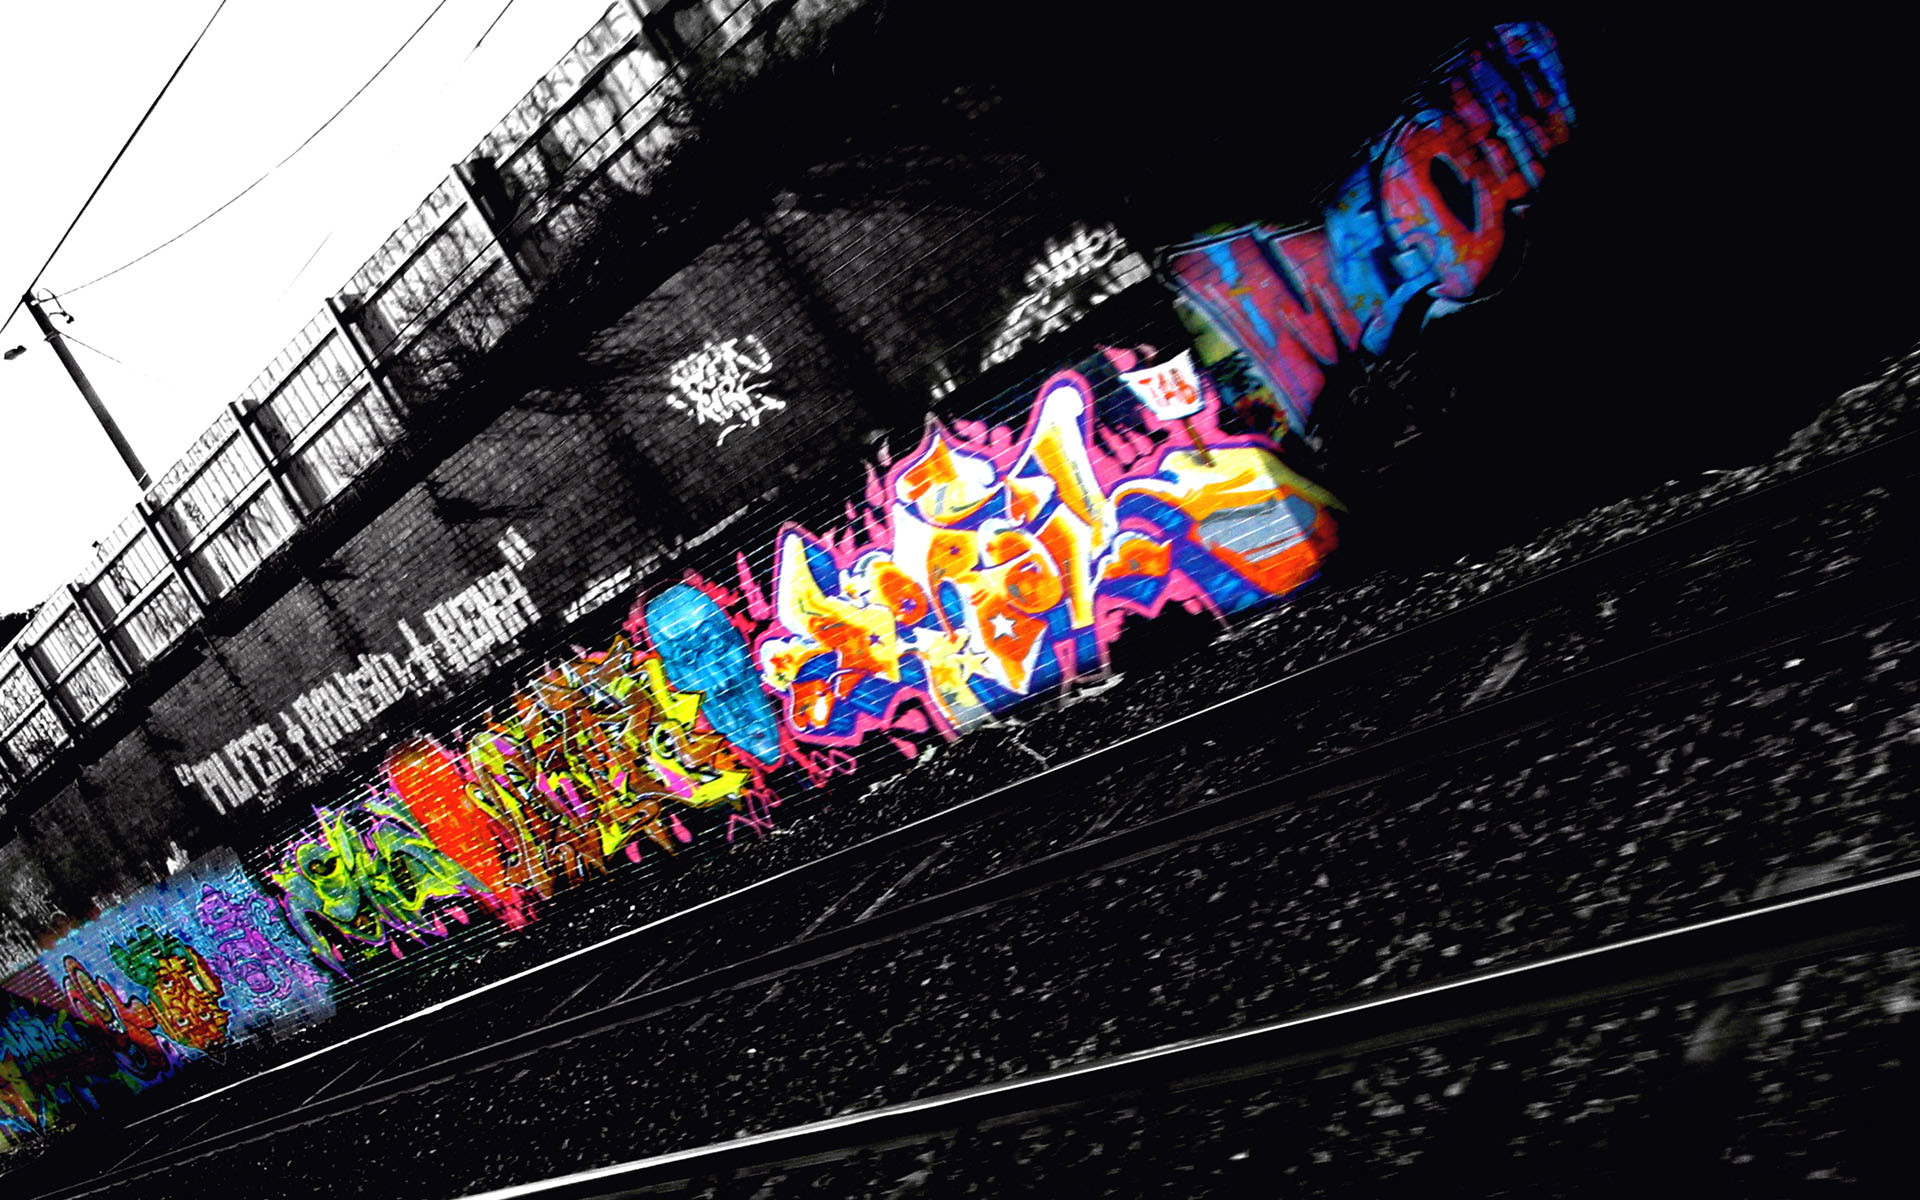 Graffiti Computer Wallpapers, Desktop Backgrounds | | ID .